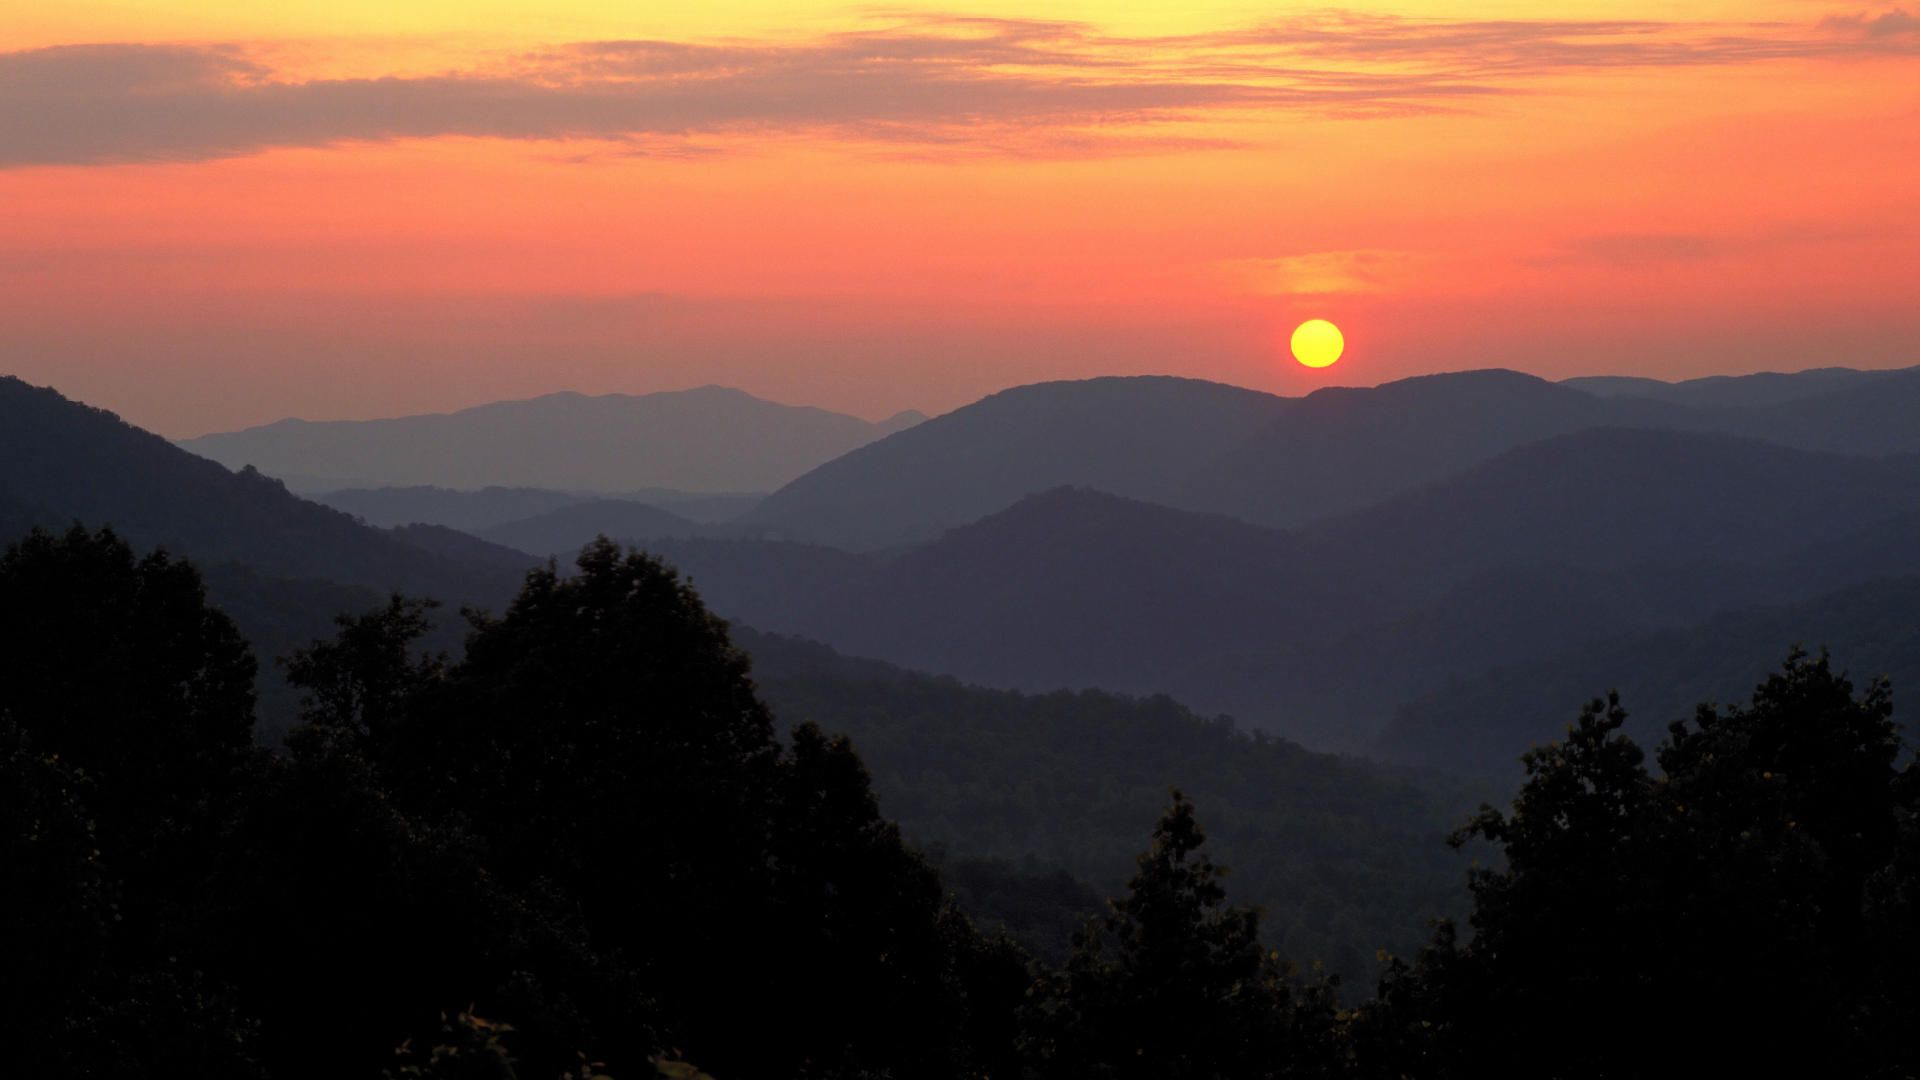 60 Smoky Mountain Sunrise Wallpapers   Download at WallpaperBro 1920x1080